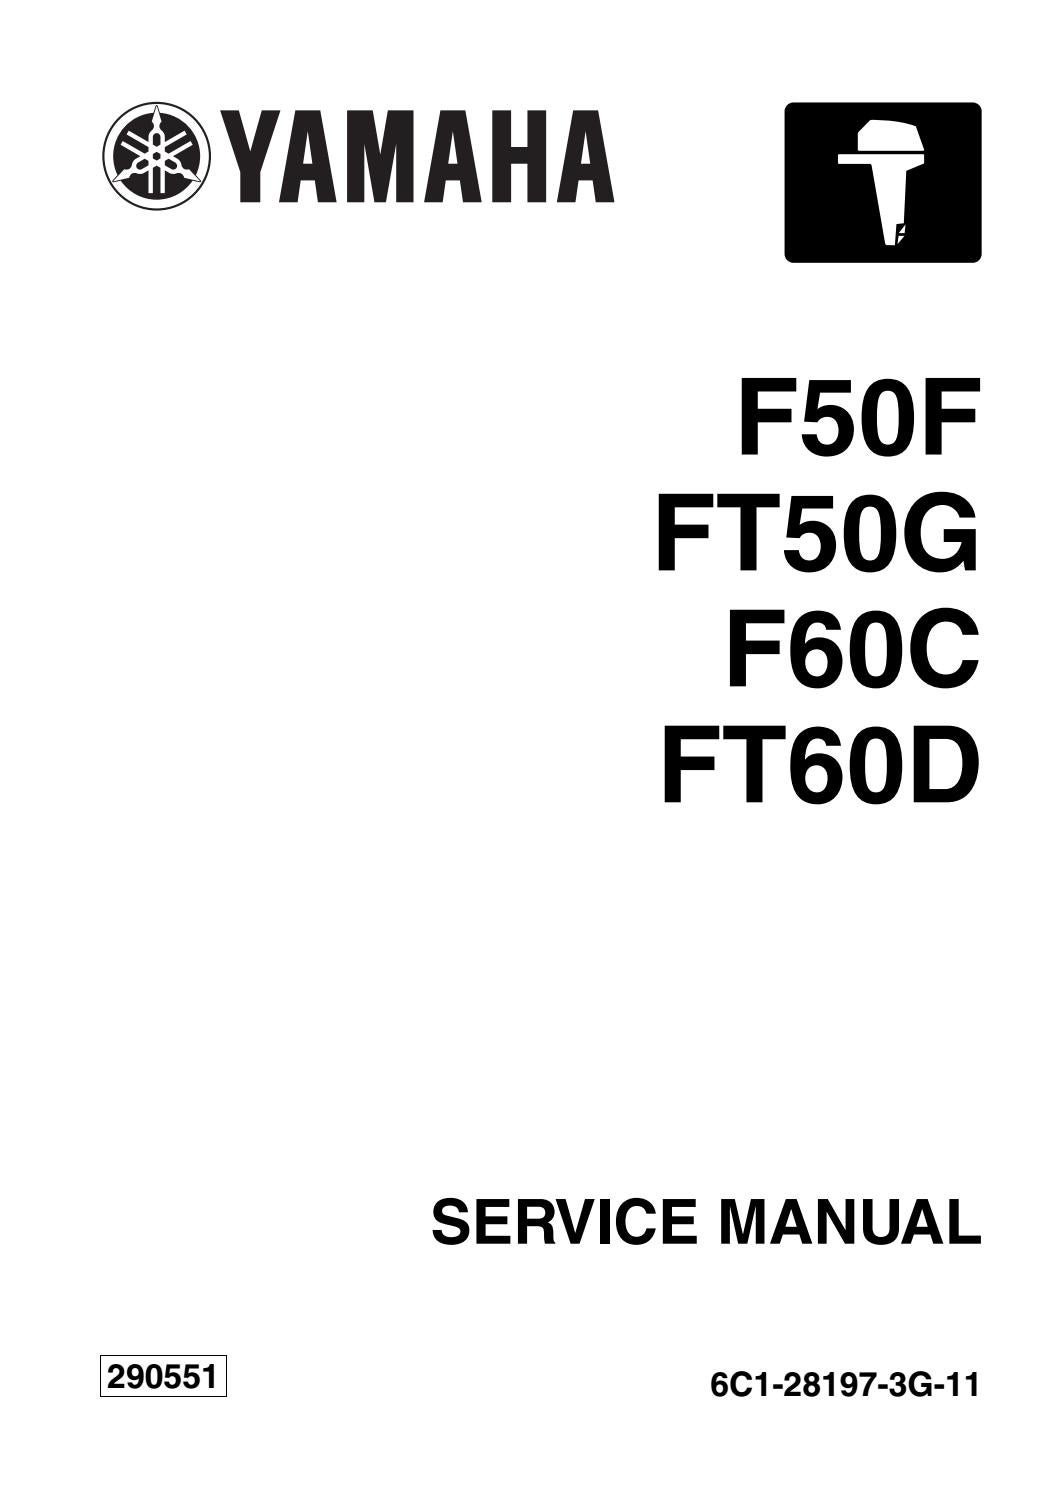 Yamaha outboard f50feht service repair manual sn1000001 副本